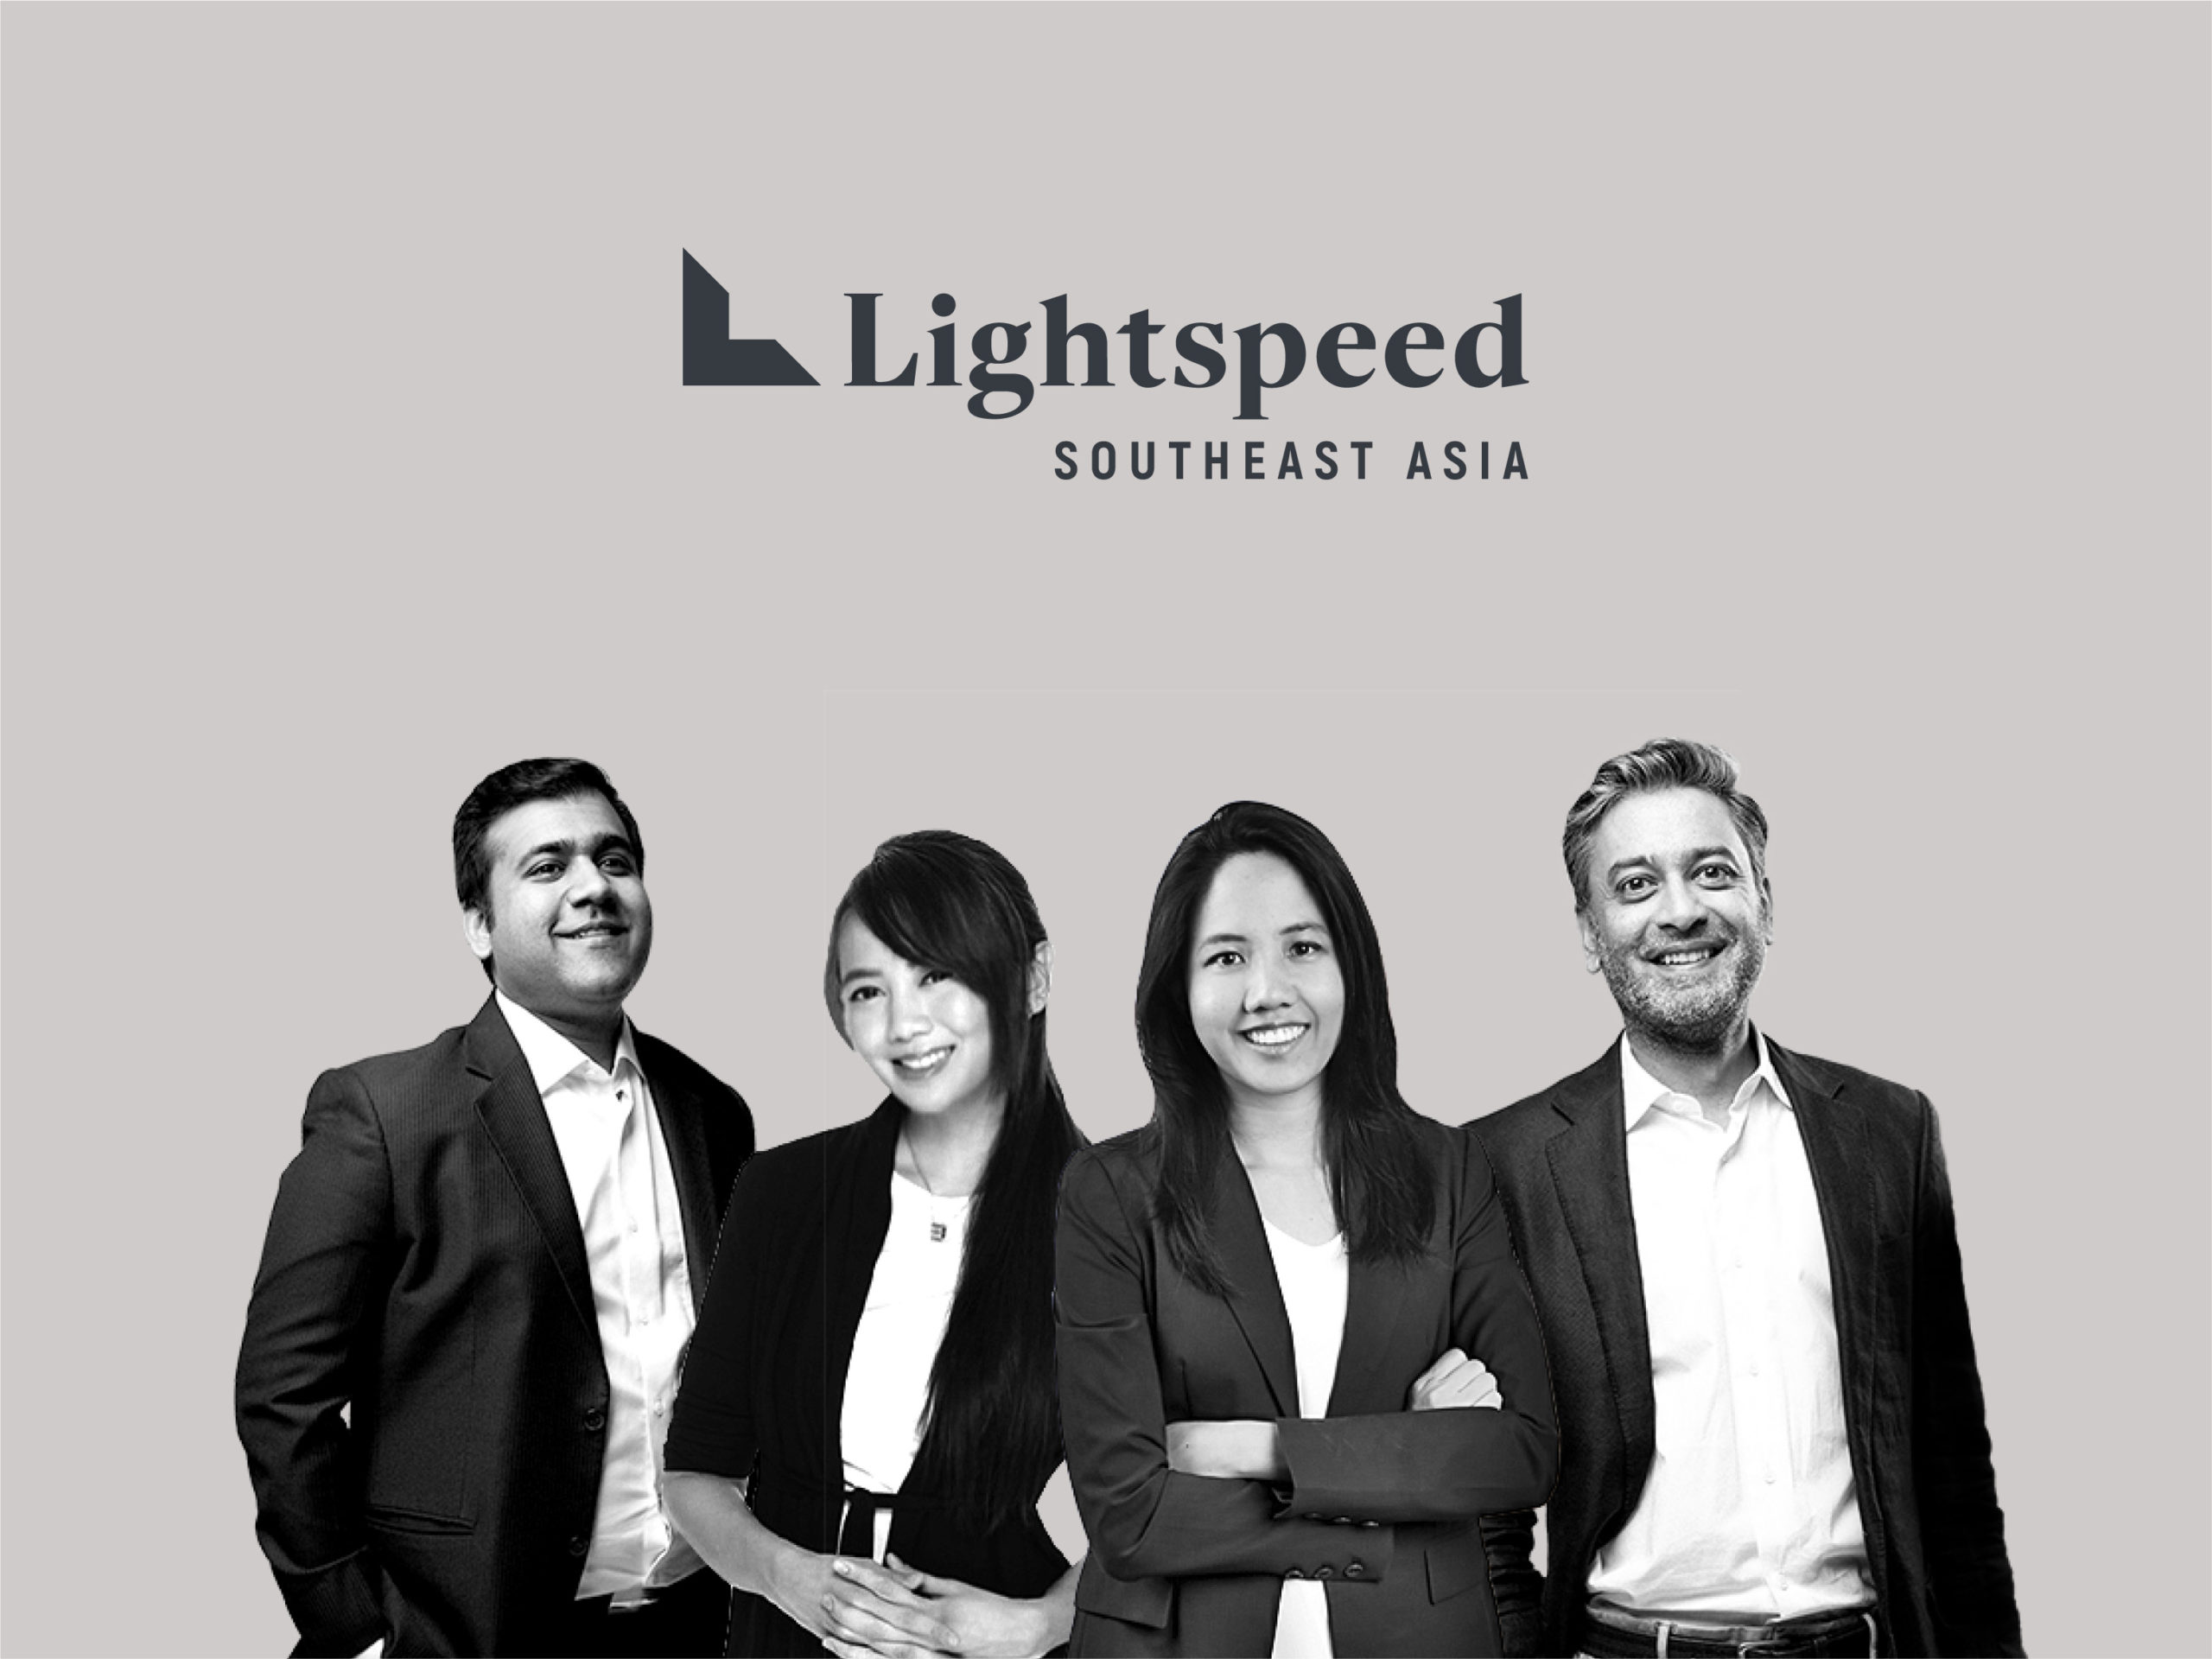 Lightspeed announces the launch of its Southeast Asia operations – ProWellTech